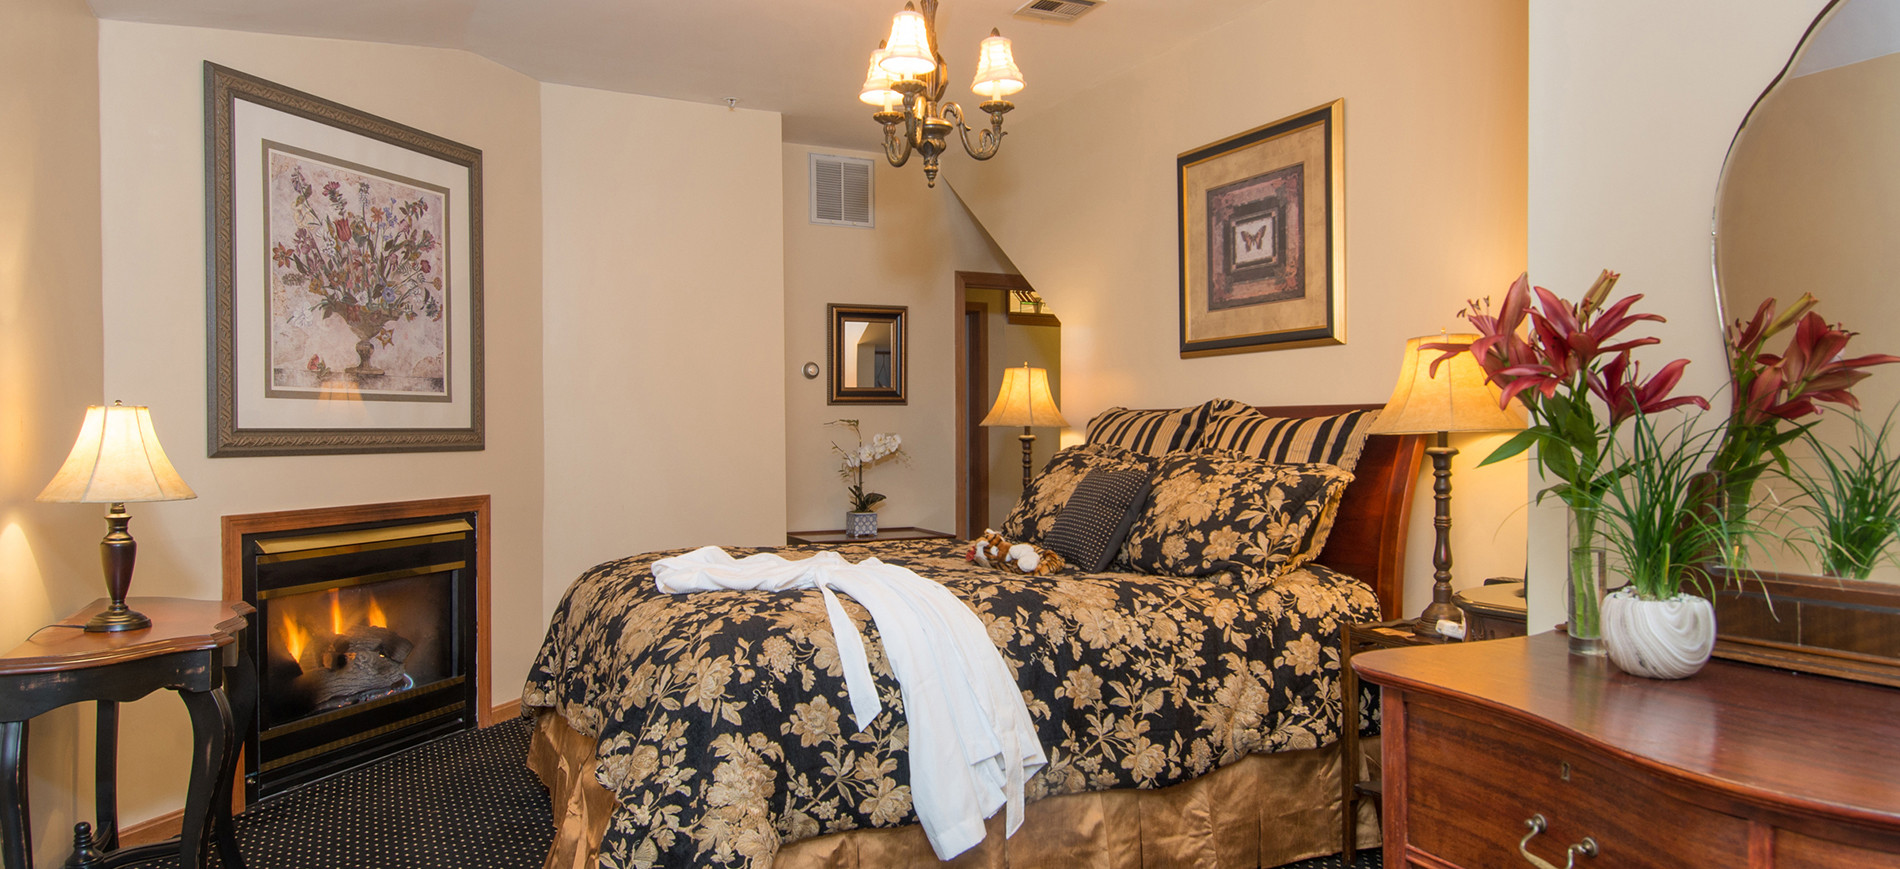 Fireplace with picture above, queen bed with gold & black bedding & white robe below chandelier